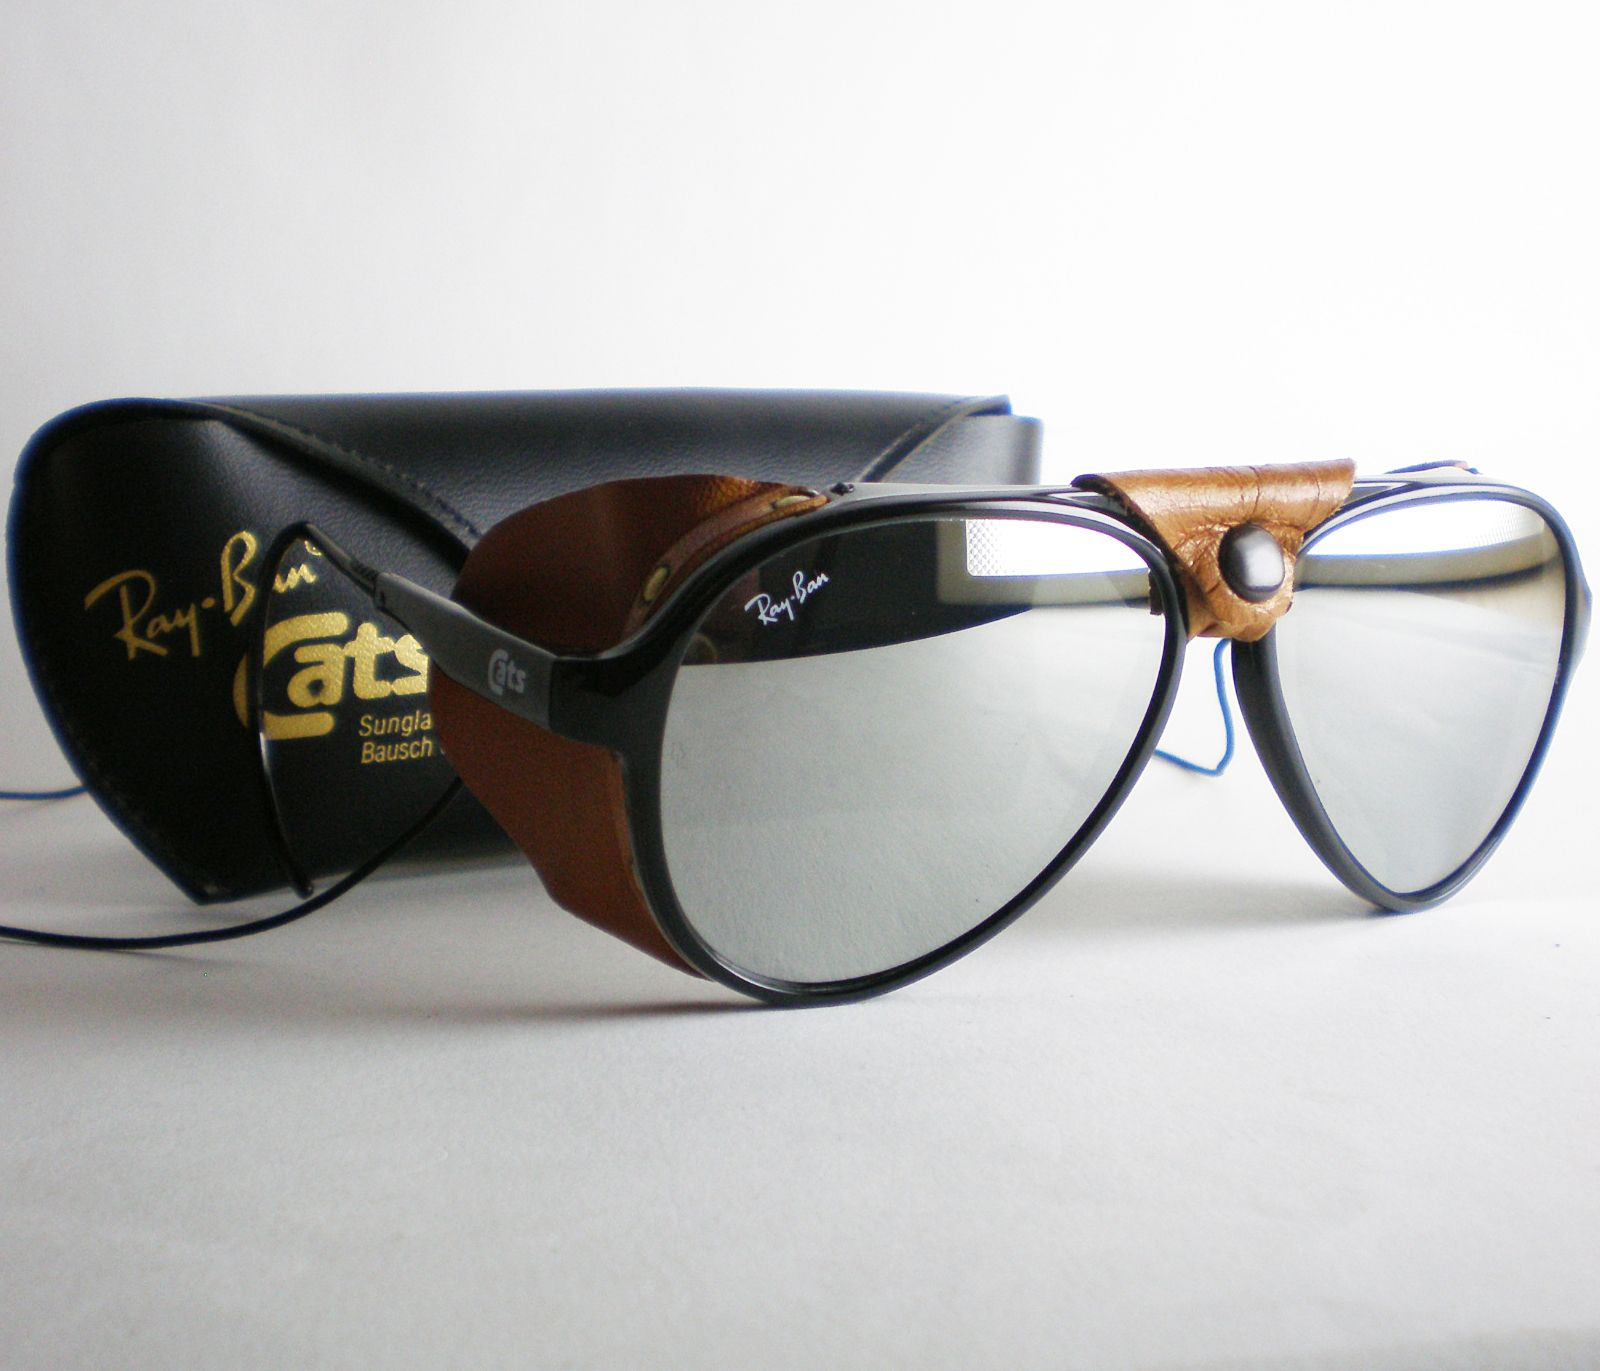 c017ca2a7c Vintage Ray Ban CATS 8000 MIRRORED Sunglasses aviator side shield leathers  black